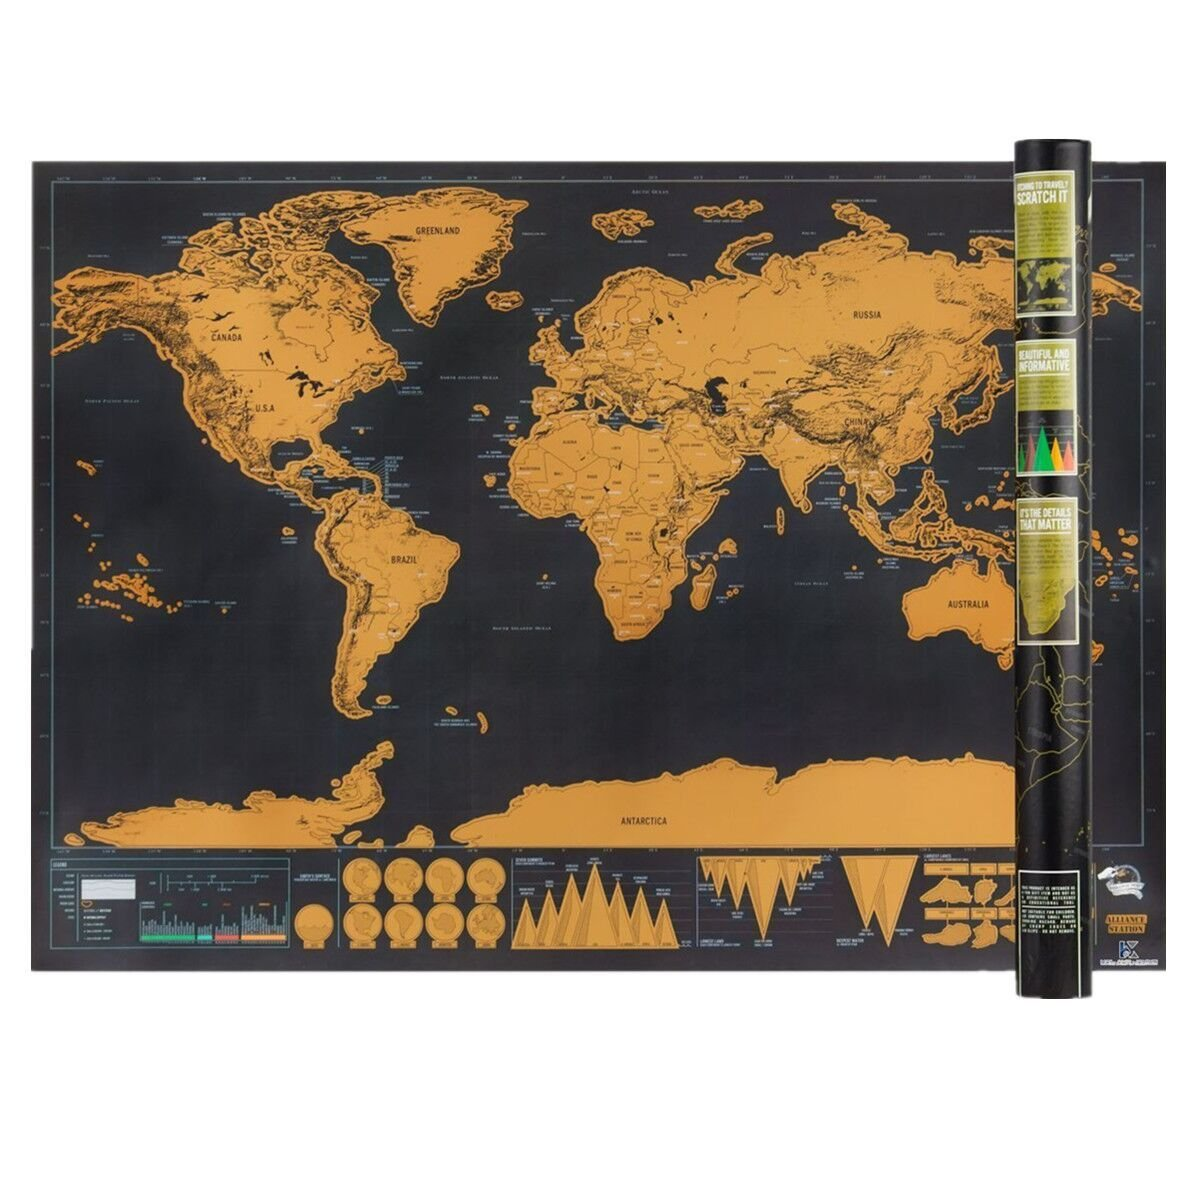 Scratch Off World Map, Interactive Travel Scratch Map Black and Gold Deluxe Edition, Bright Colors Premium Artwork Poster for Home/Wall Decor SEALEN World Map L